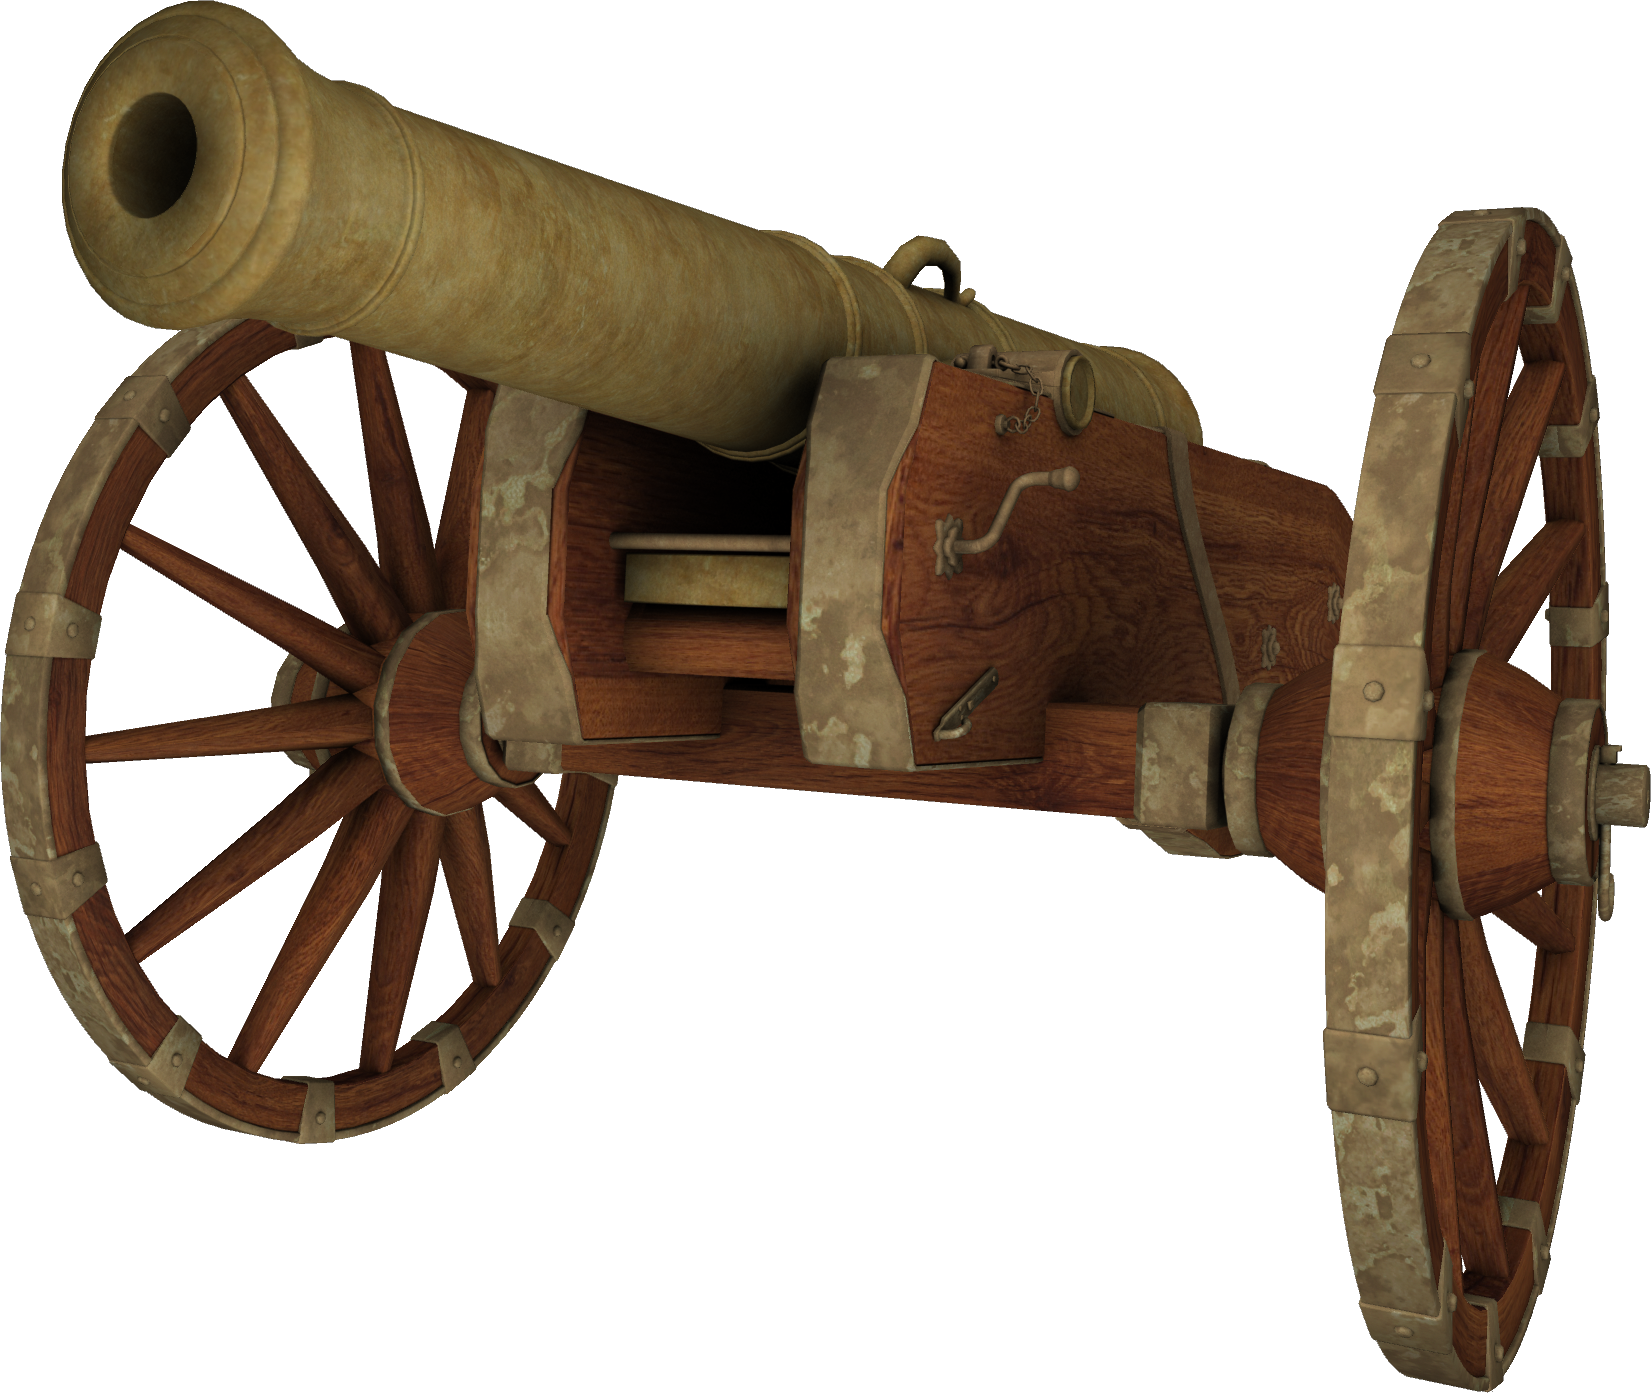 Cannon png. Image labrynna hyrule conquest